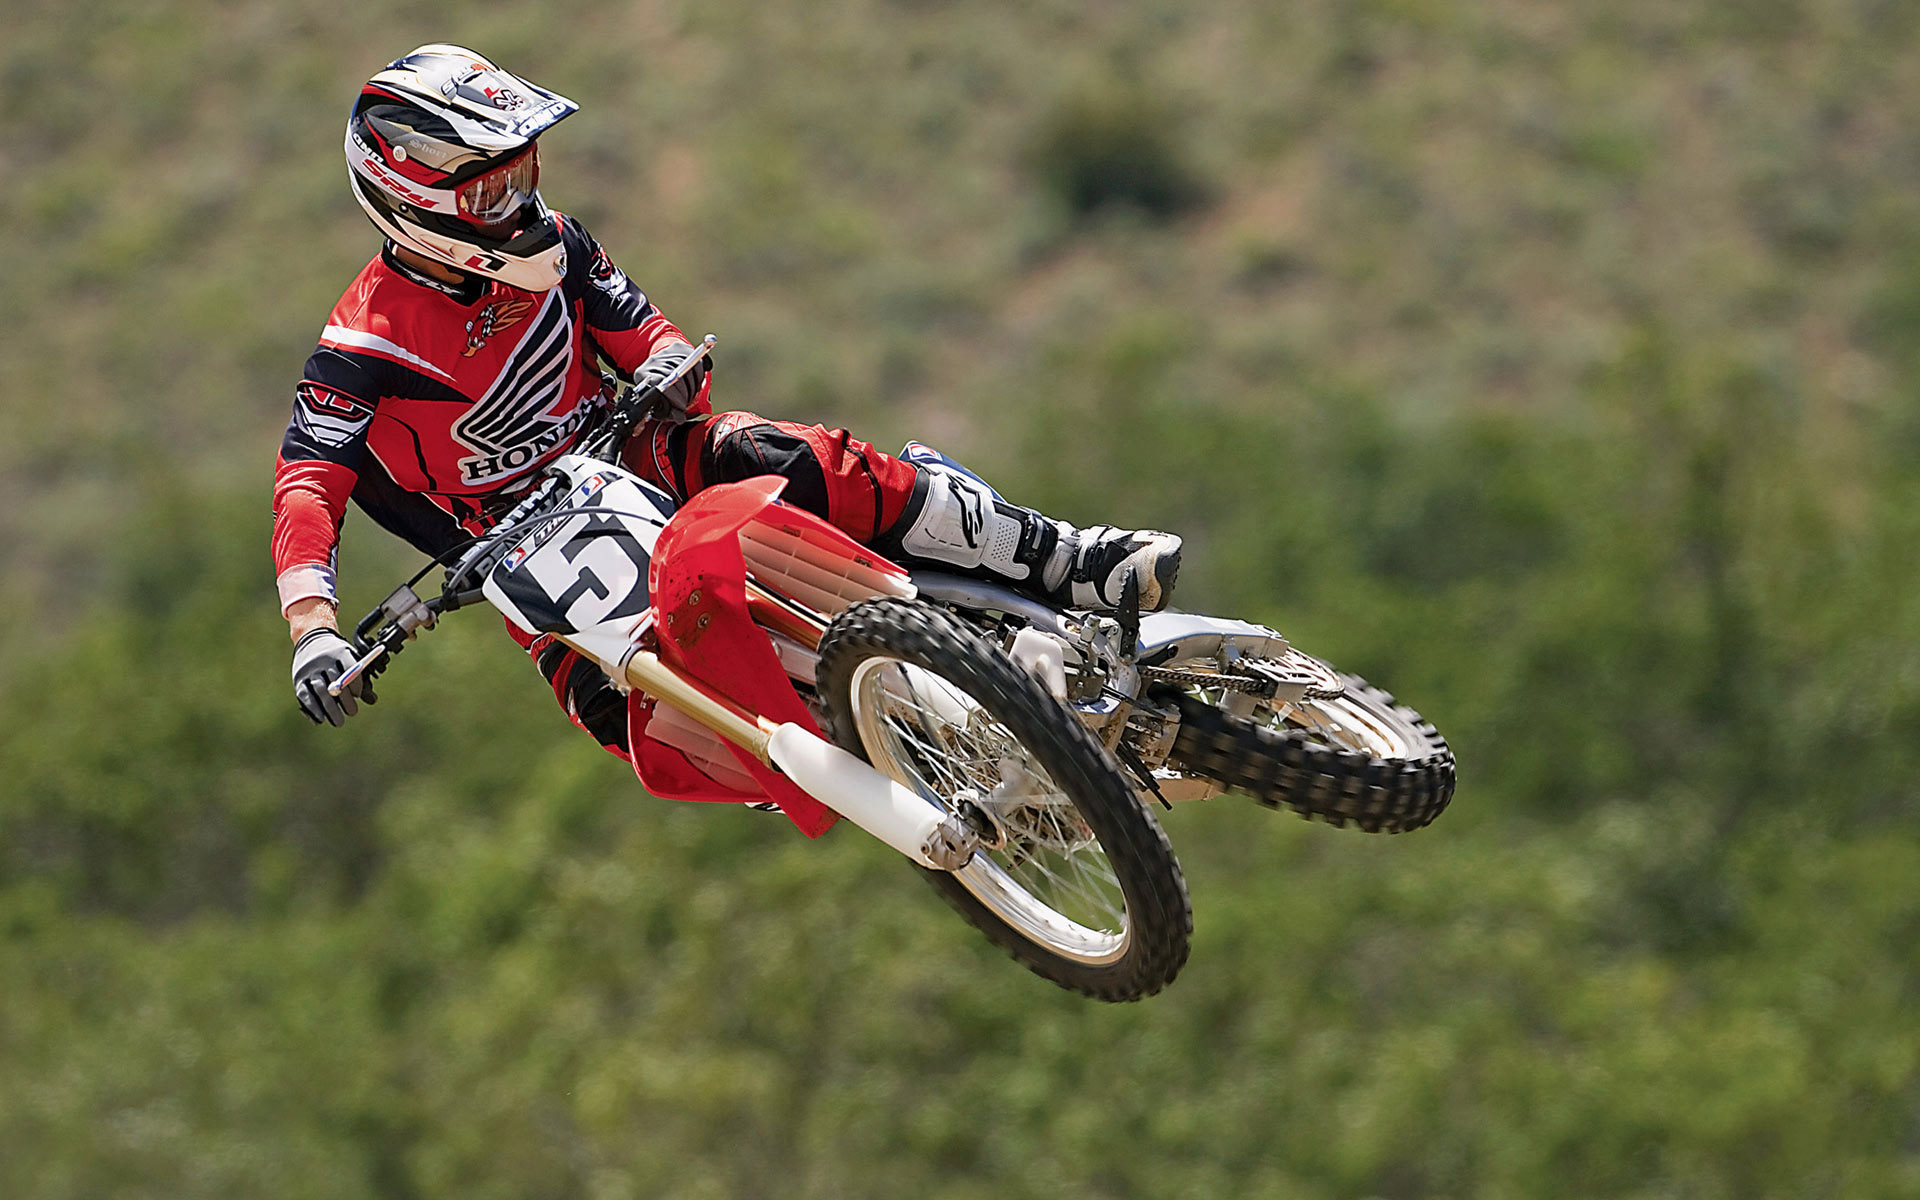 sfondi motocross sfondi gratis wallpapers 1920x1200